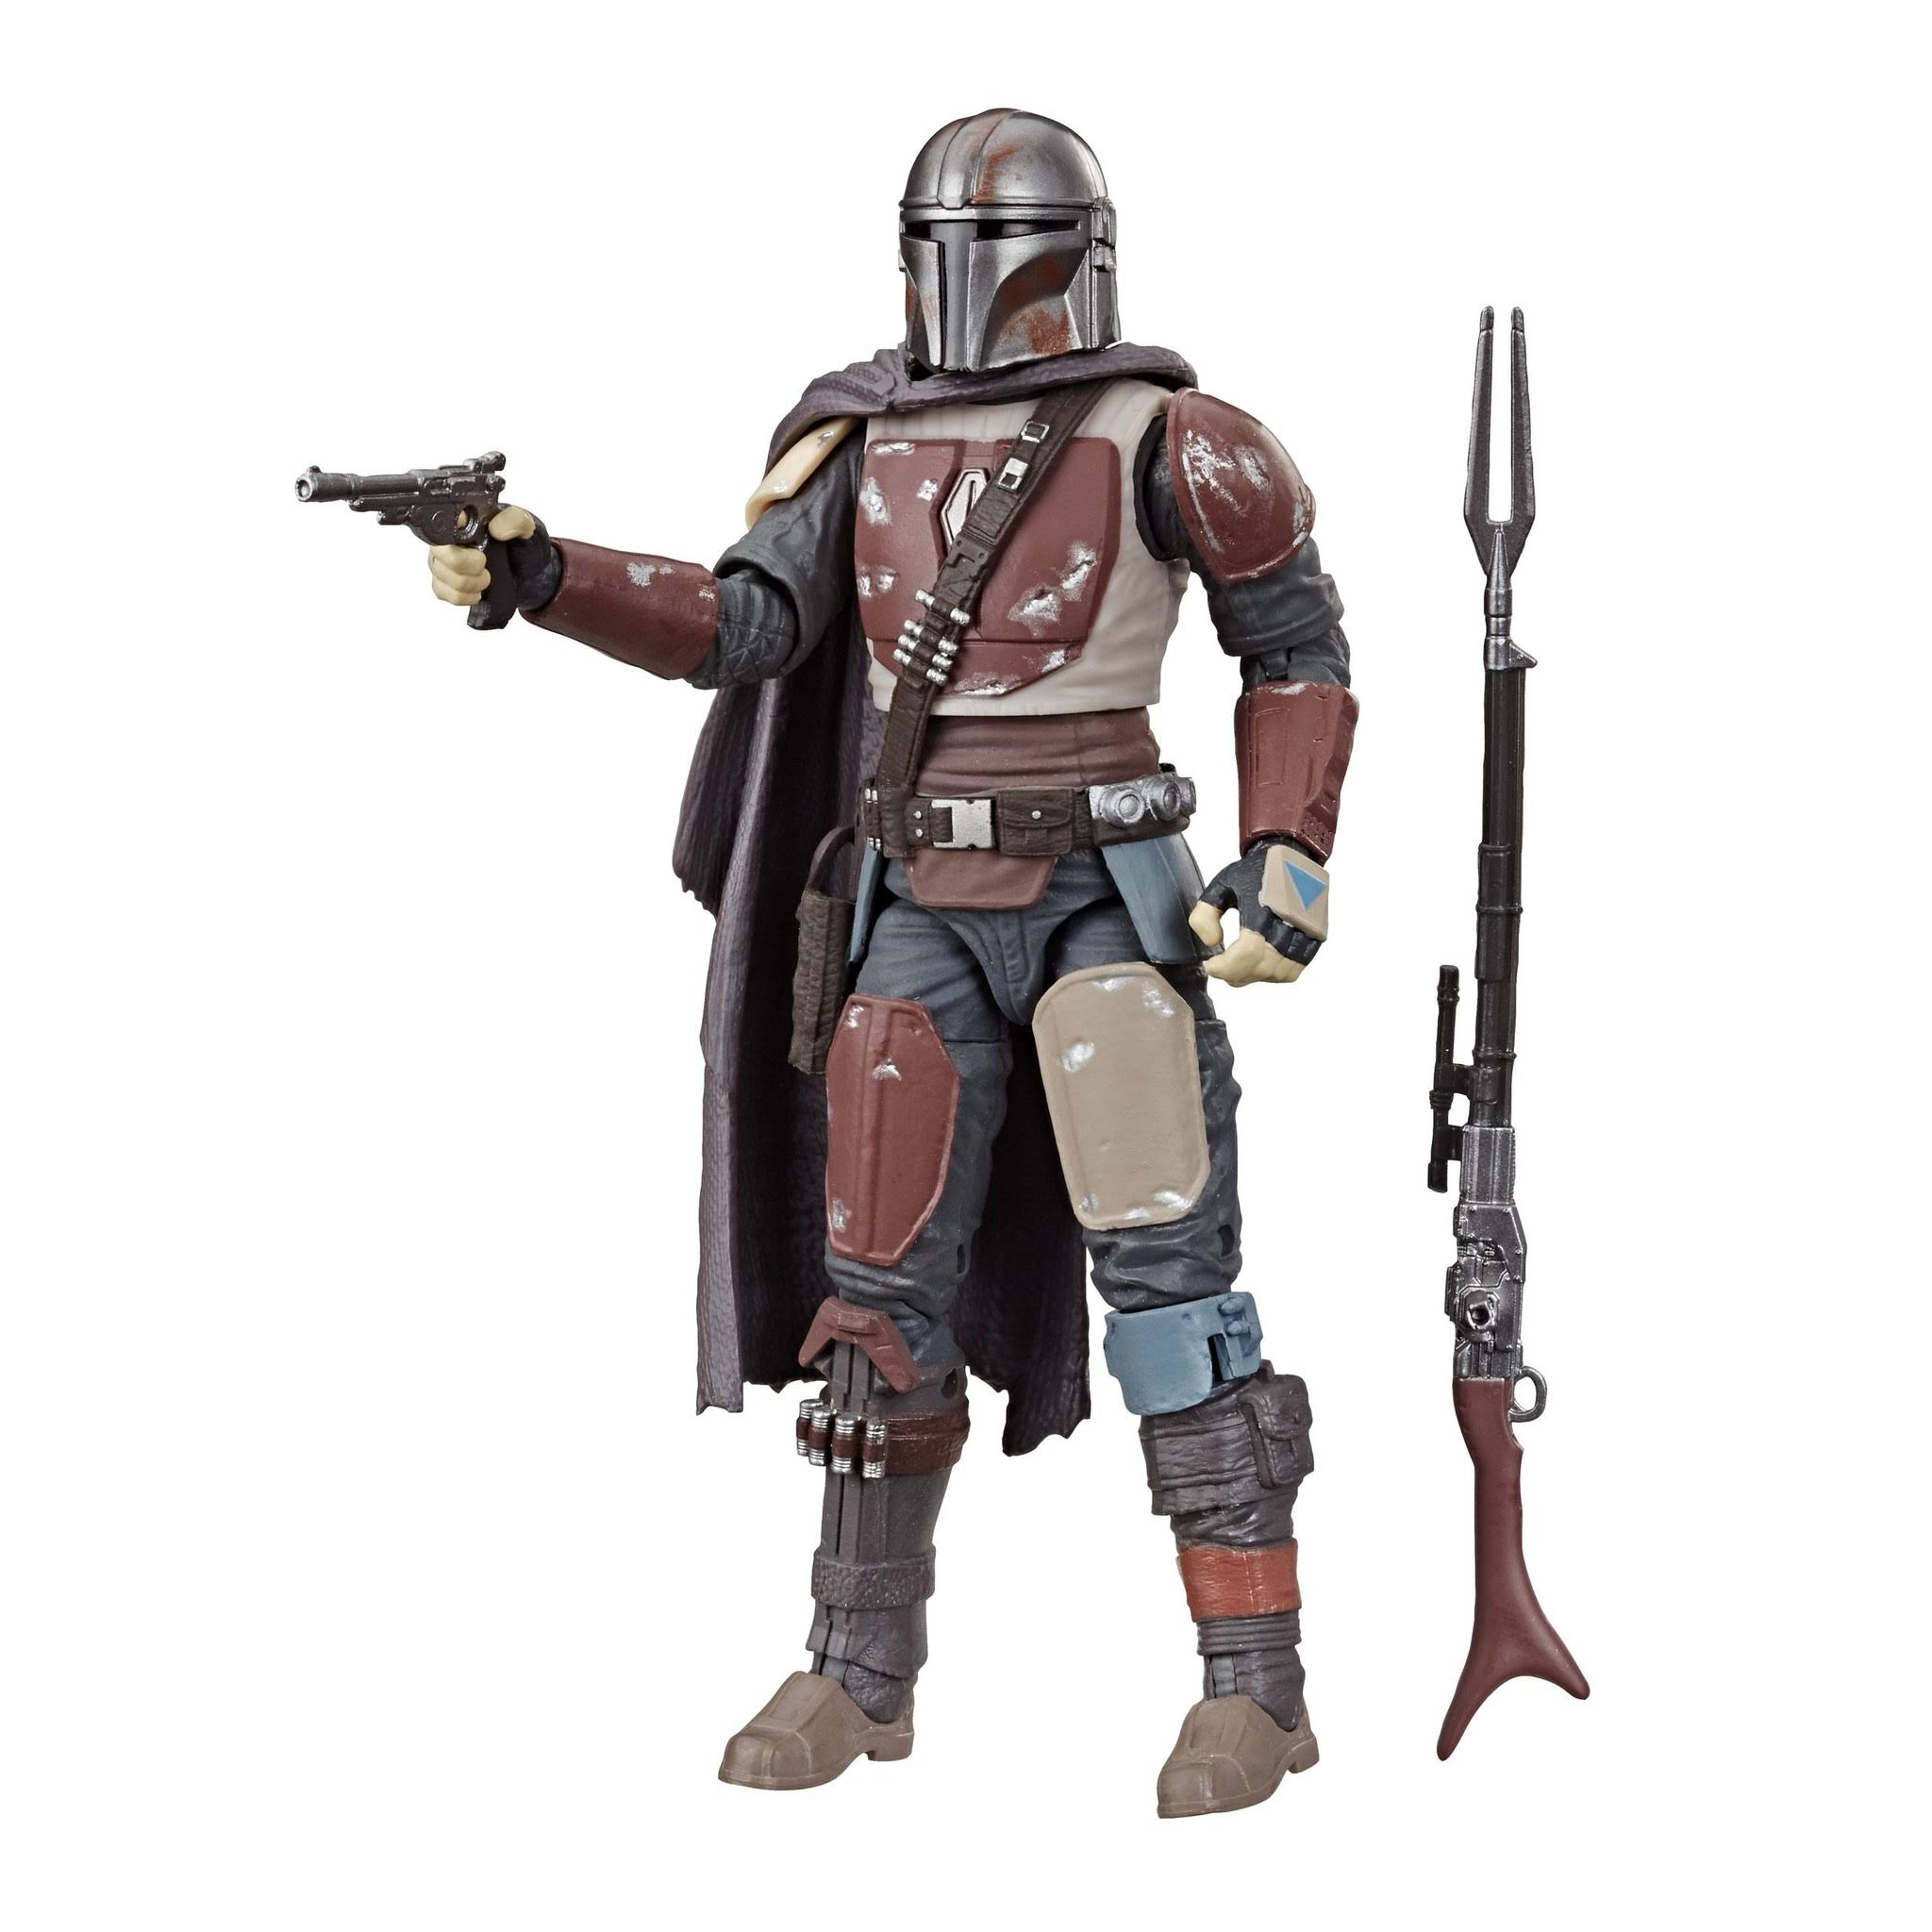 Hasbro Star Wars The Black Series The Mandalorian Action Figure - 6""